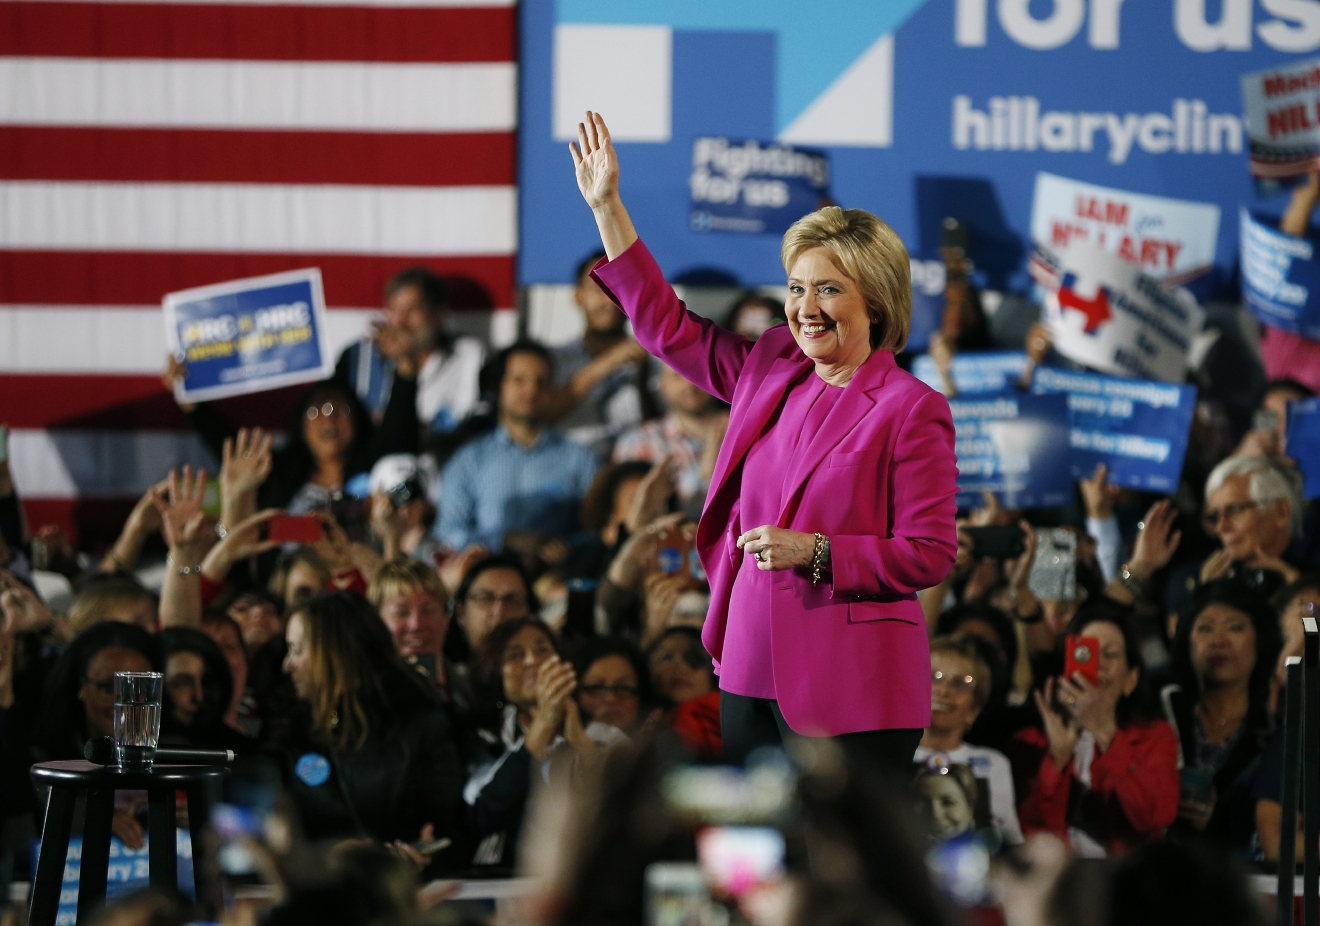 Democratic presidential candidate Hillary Clinton speaks at a rally Thursday, Feb. 18, 2016, in Las Vegas. (AP Photo/John Locher)